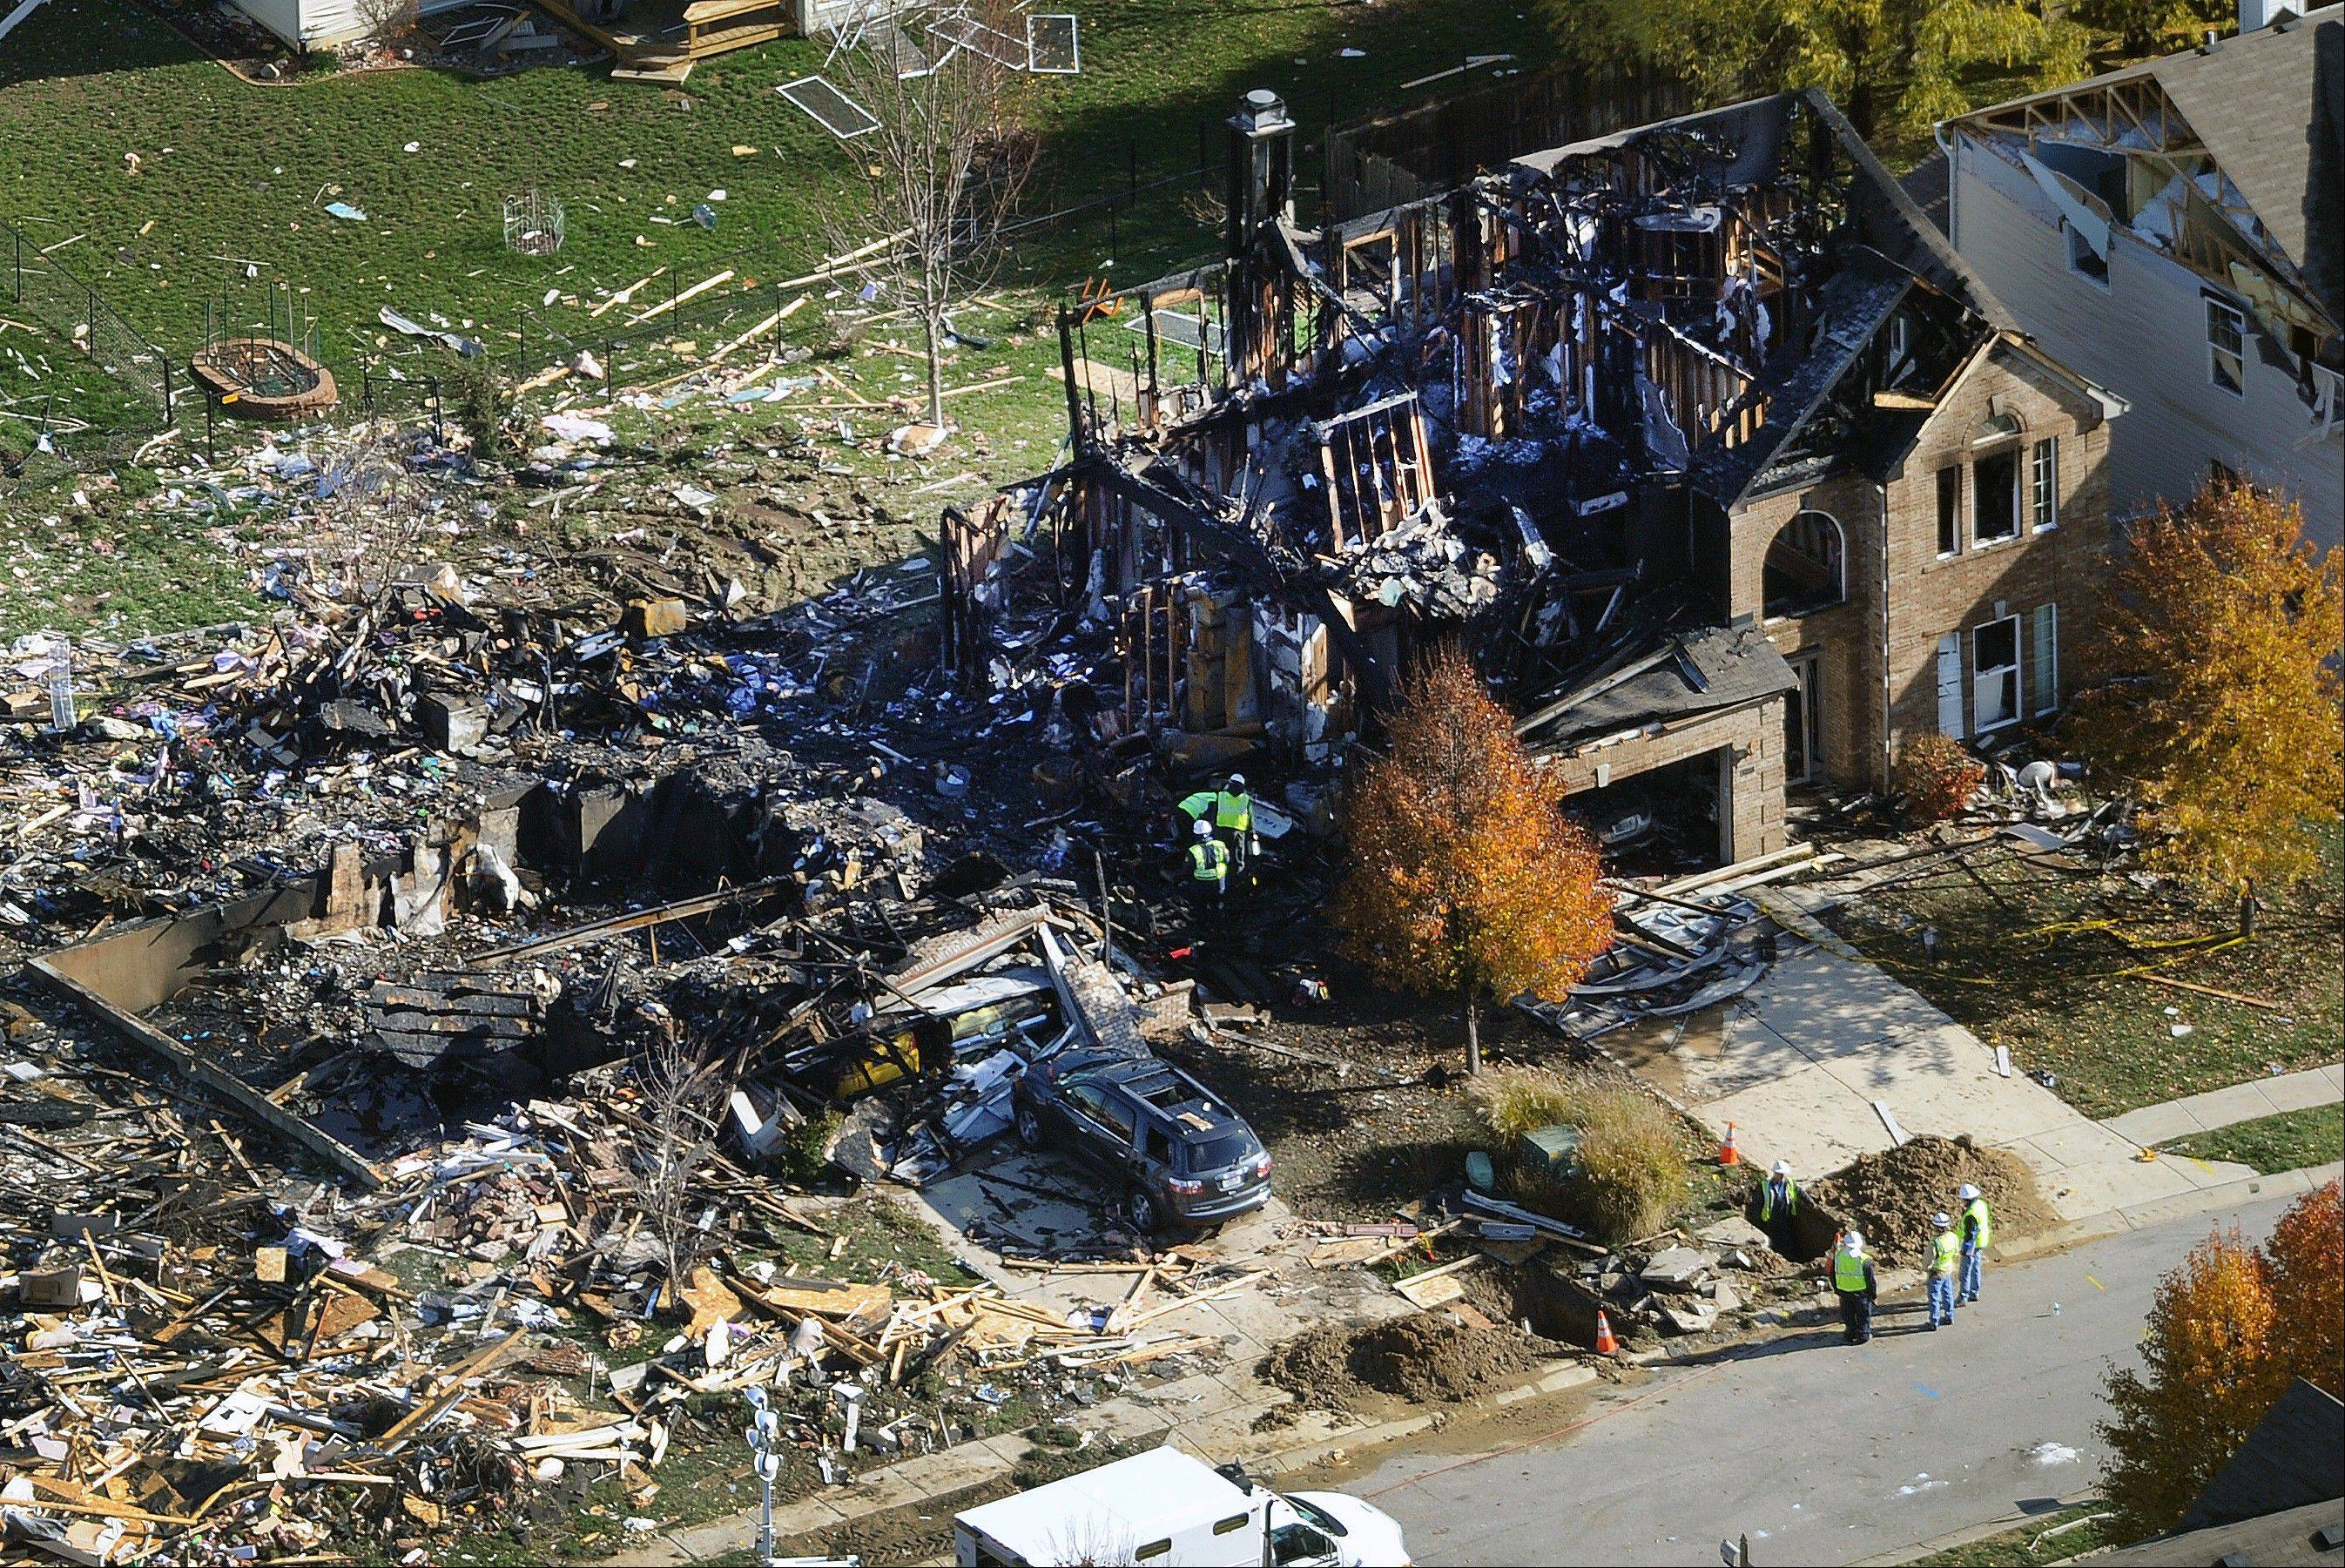 Citizens Energy workers continue their investigation Monday, Nov. 12, 2012, at the site of an explosion at a house in Indianapolis. The search for what caused a massive, deadly explosion that rocked an Indianapolis neighborhood turned to natural gas Monday, with officials checking gas lines and a homeowner saying a problem furnace could be to blame.